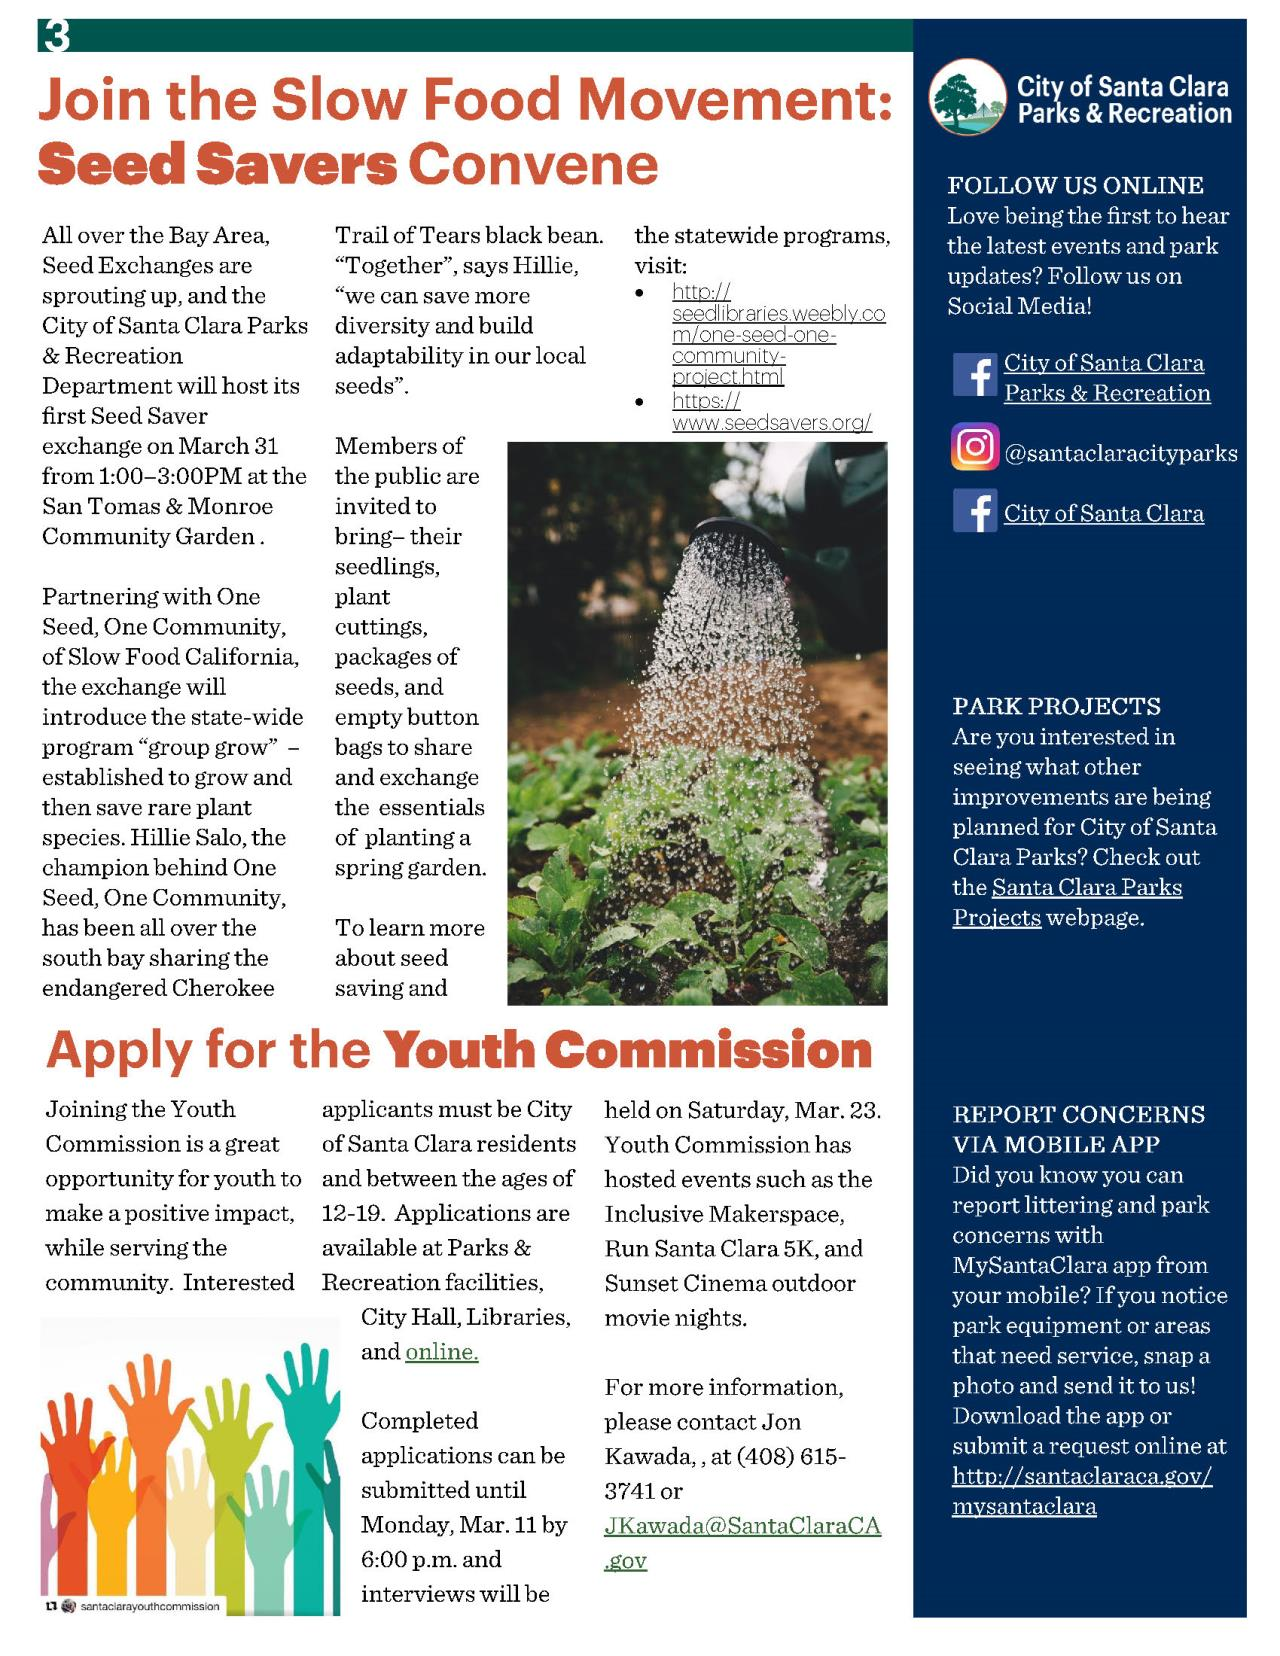 eNewsletter - March 2019_Page_3